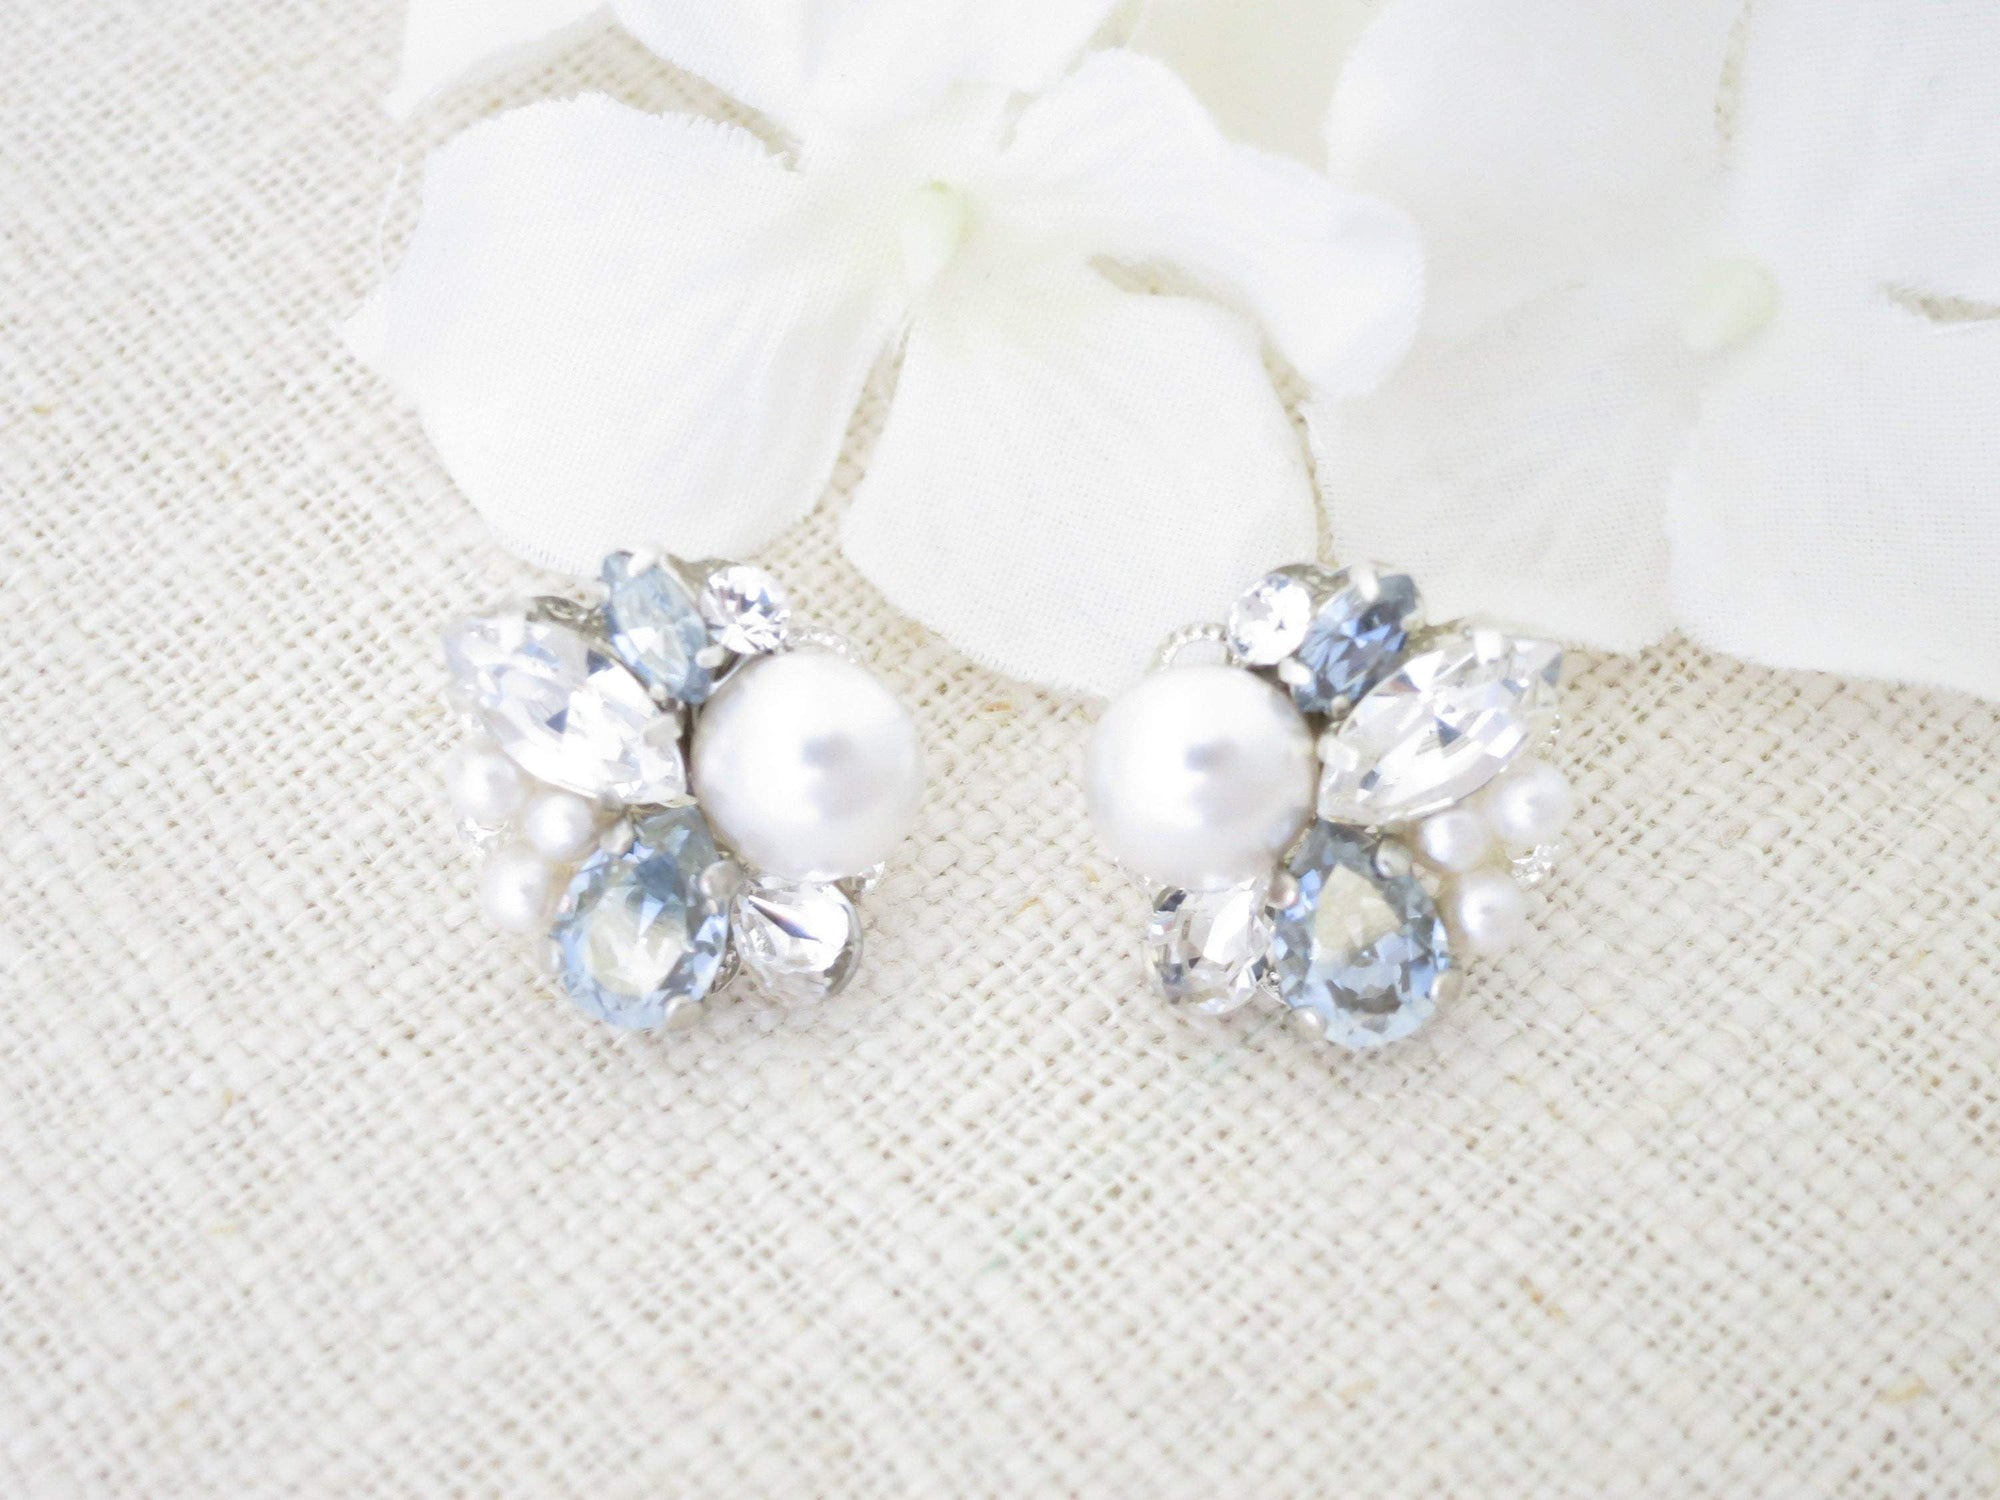 DIANA:  Dusty Blue Cluster Bridal Earrings - BlingBaddaBoom - Minimalist, Vintage, Modern Wedding and Bridal Jewelry